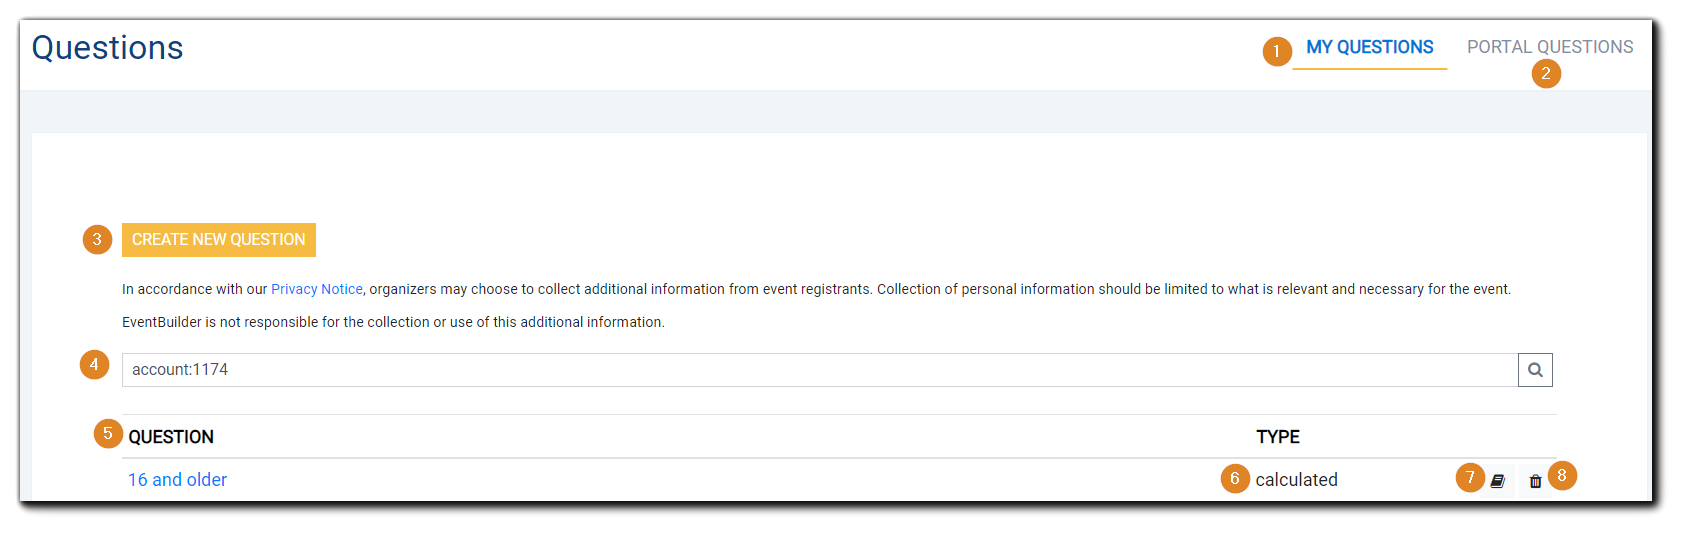 Screenshot: Main Questions page with numbered items.